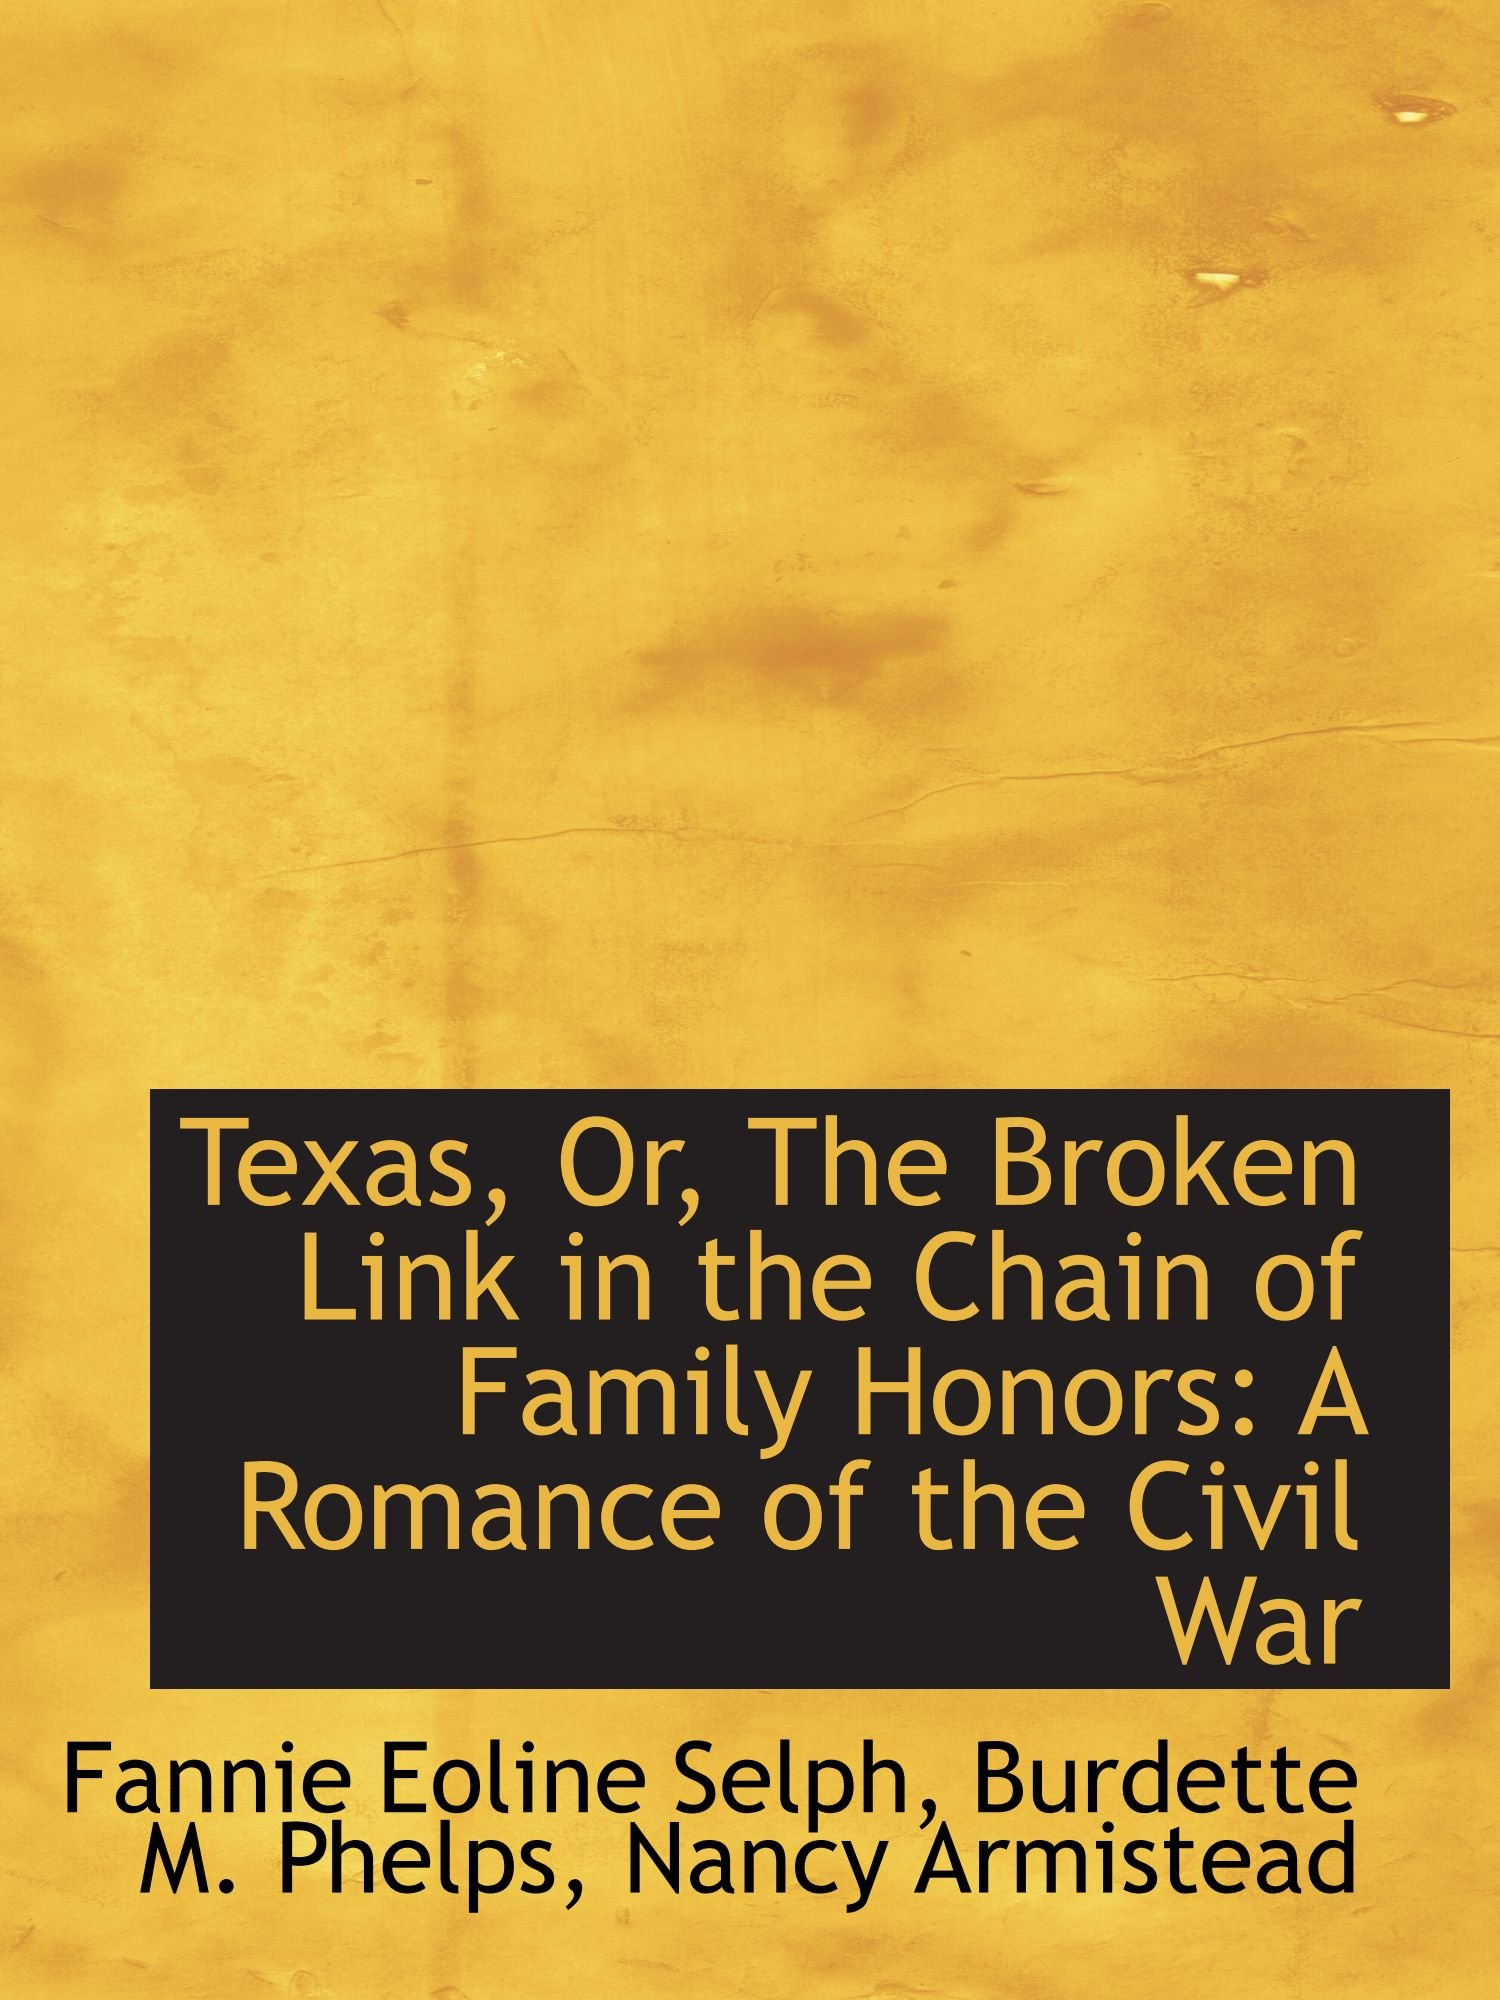 Download Texas, Or, The Broken Link in the Chain of Family Honors: A Romance of the Civil War PDF